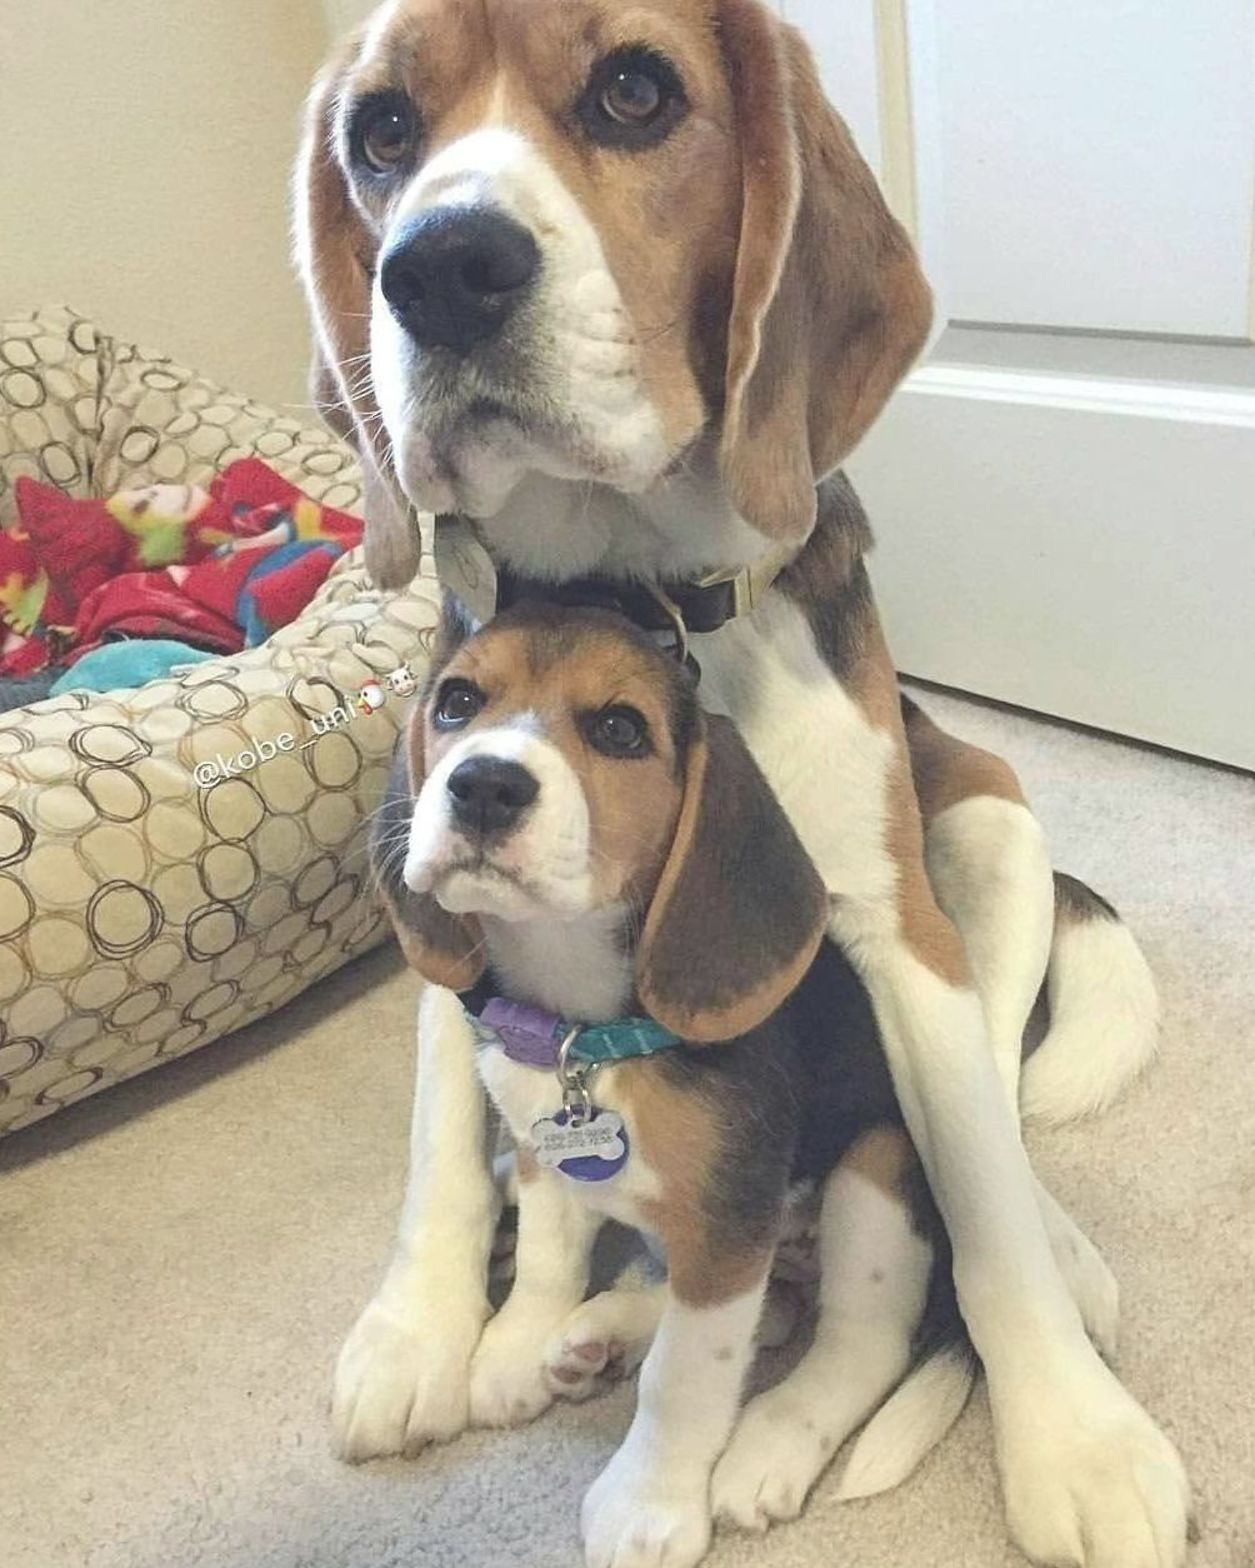 Pin By Ashley Evans On Animals 3 In 2020 Beagle Dog Cute